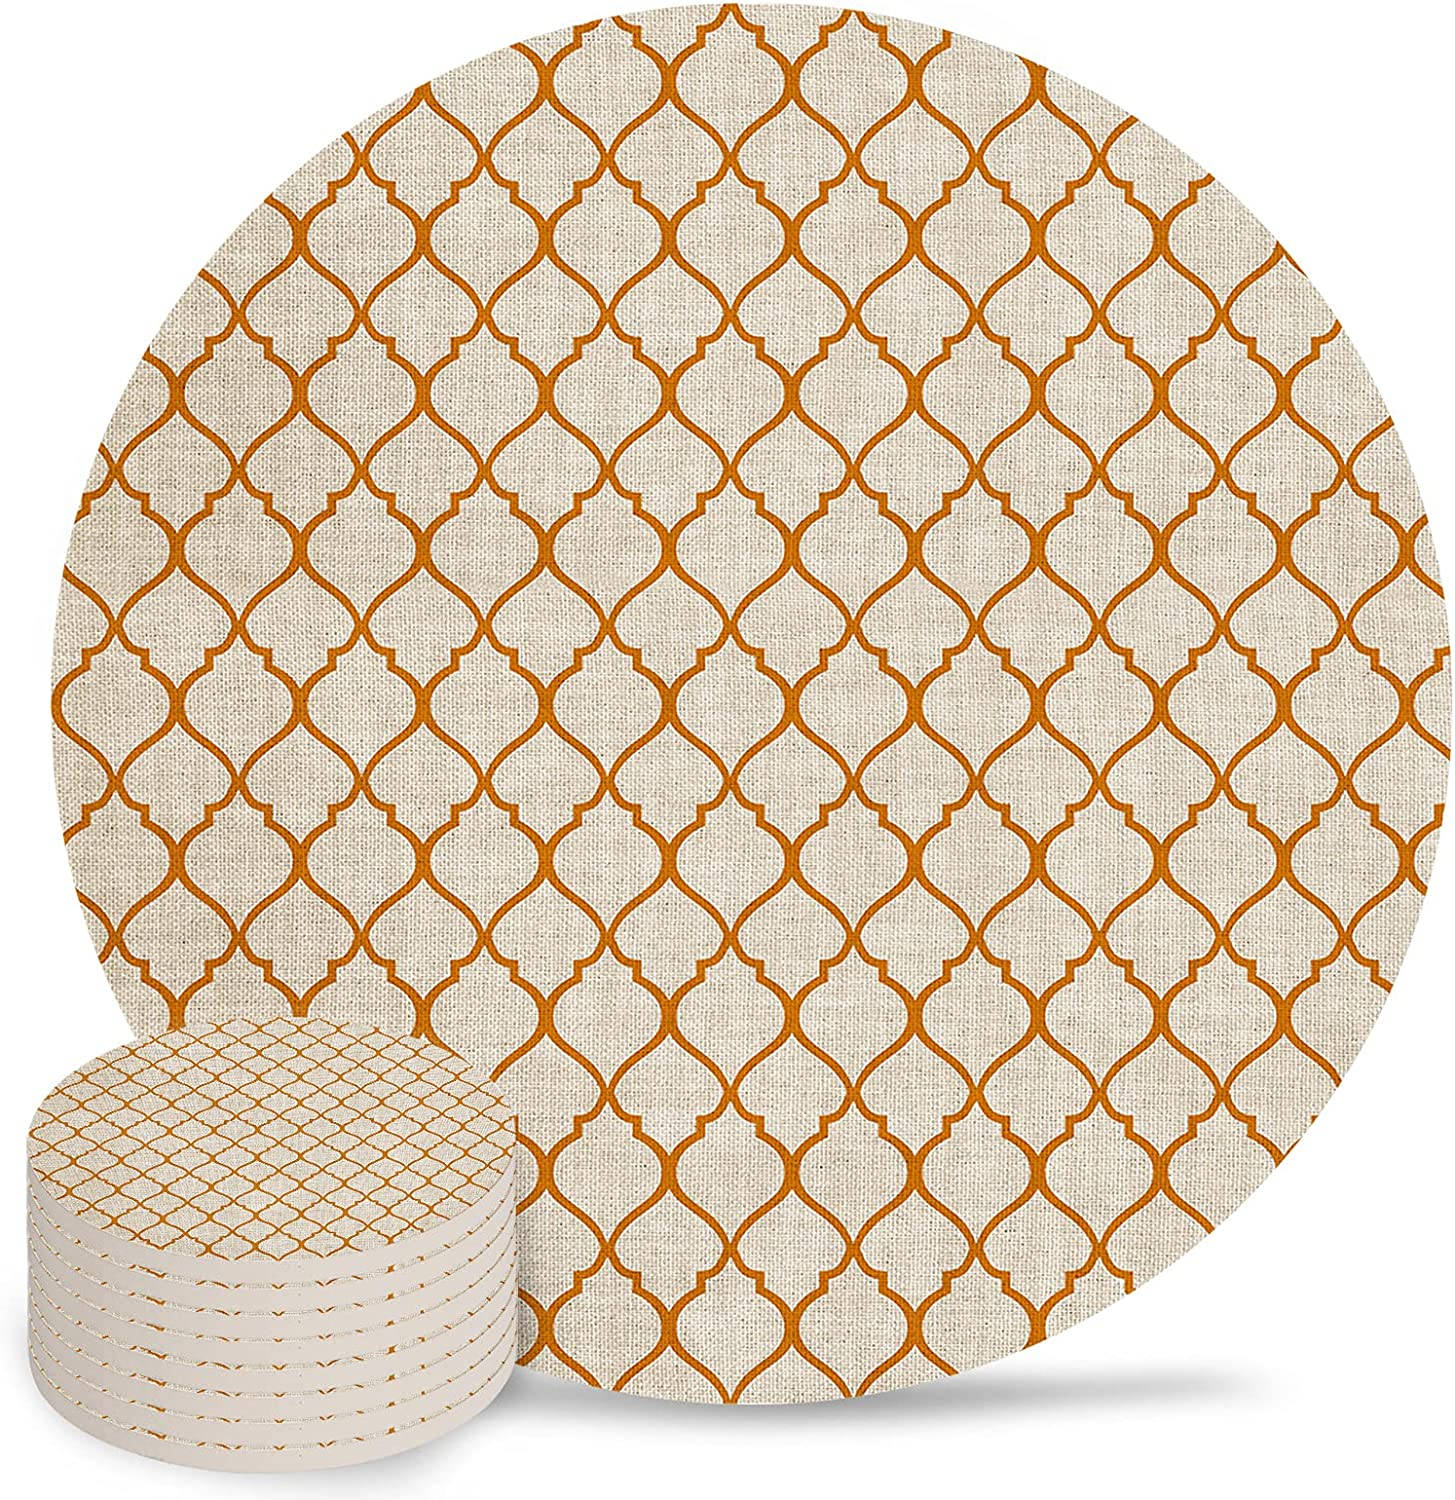 Moroccan Absorbent Coasters 8-Piece Ceramic Set for Sale SALE% OFF Dr